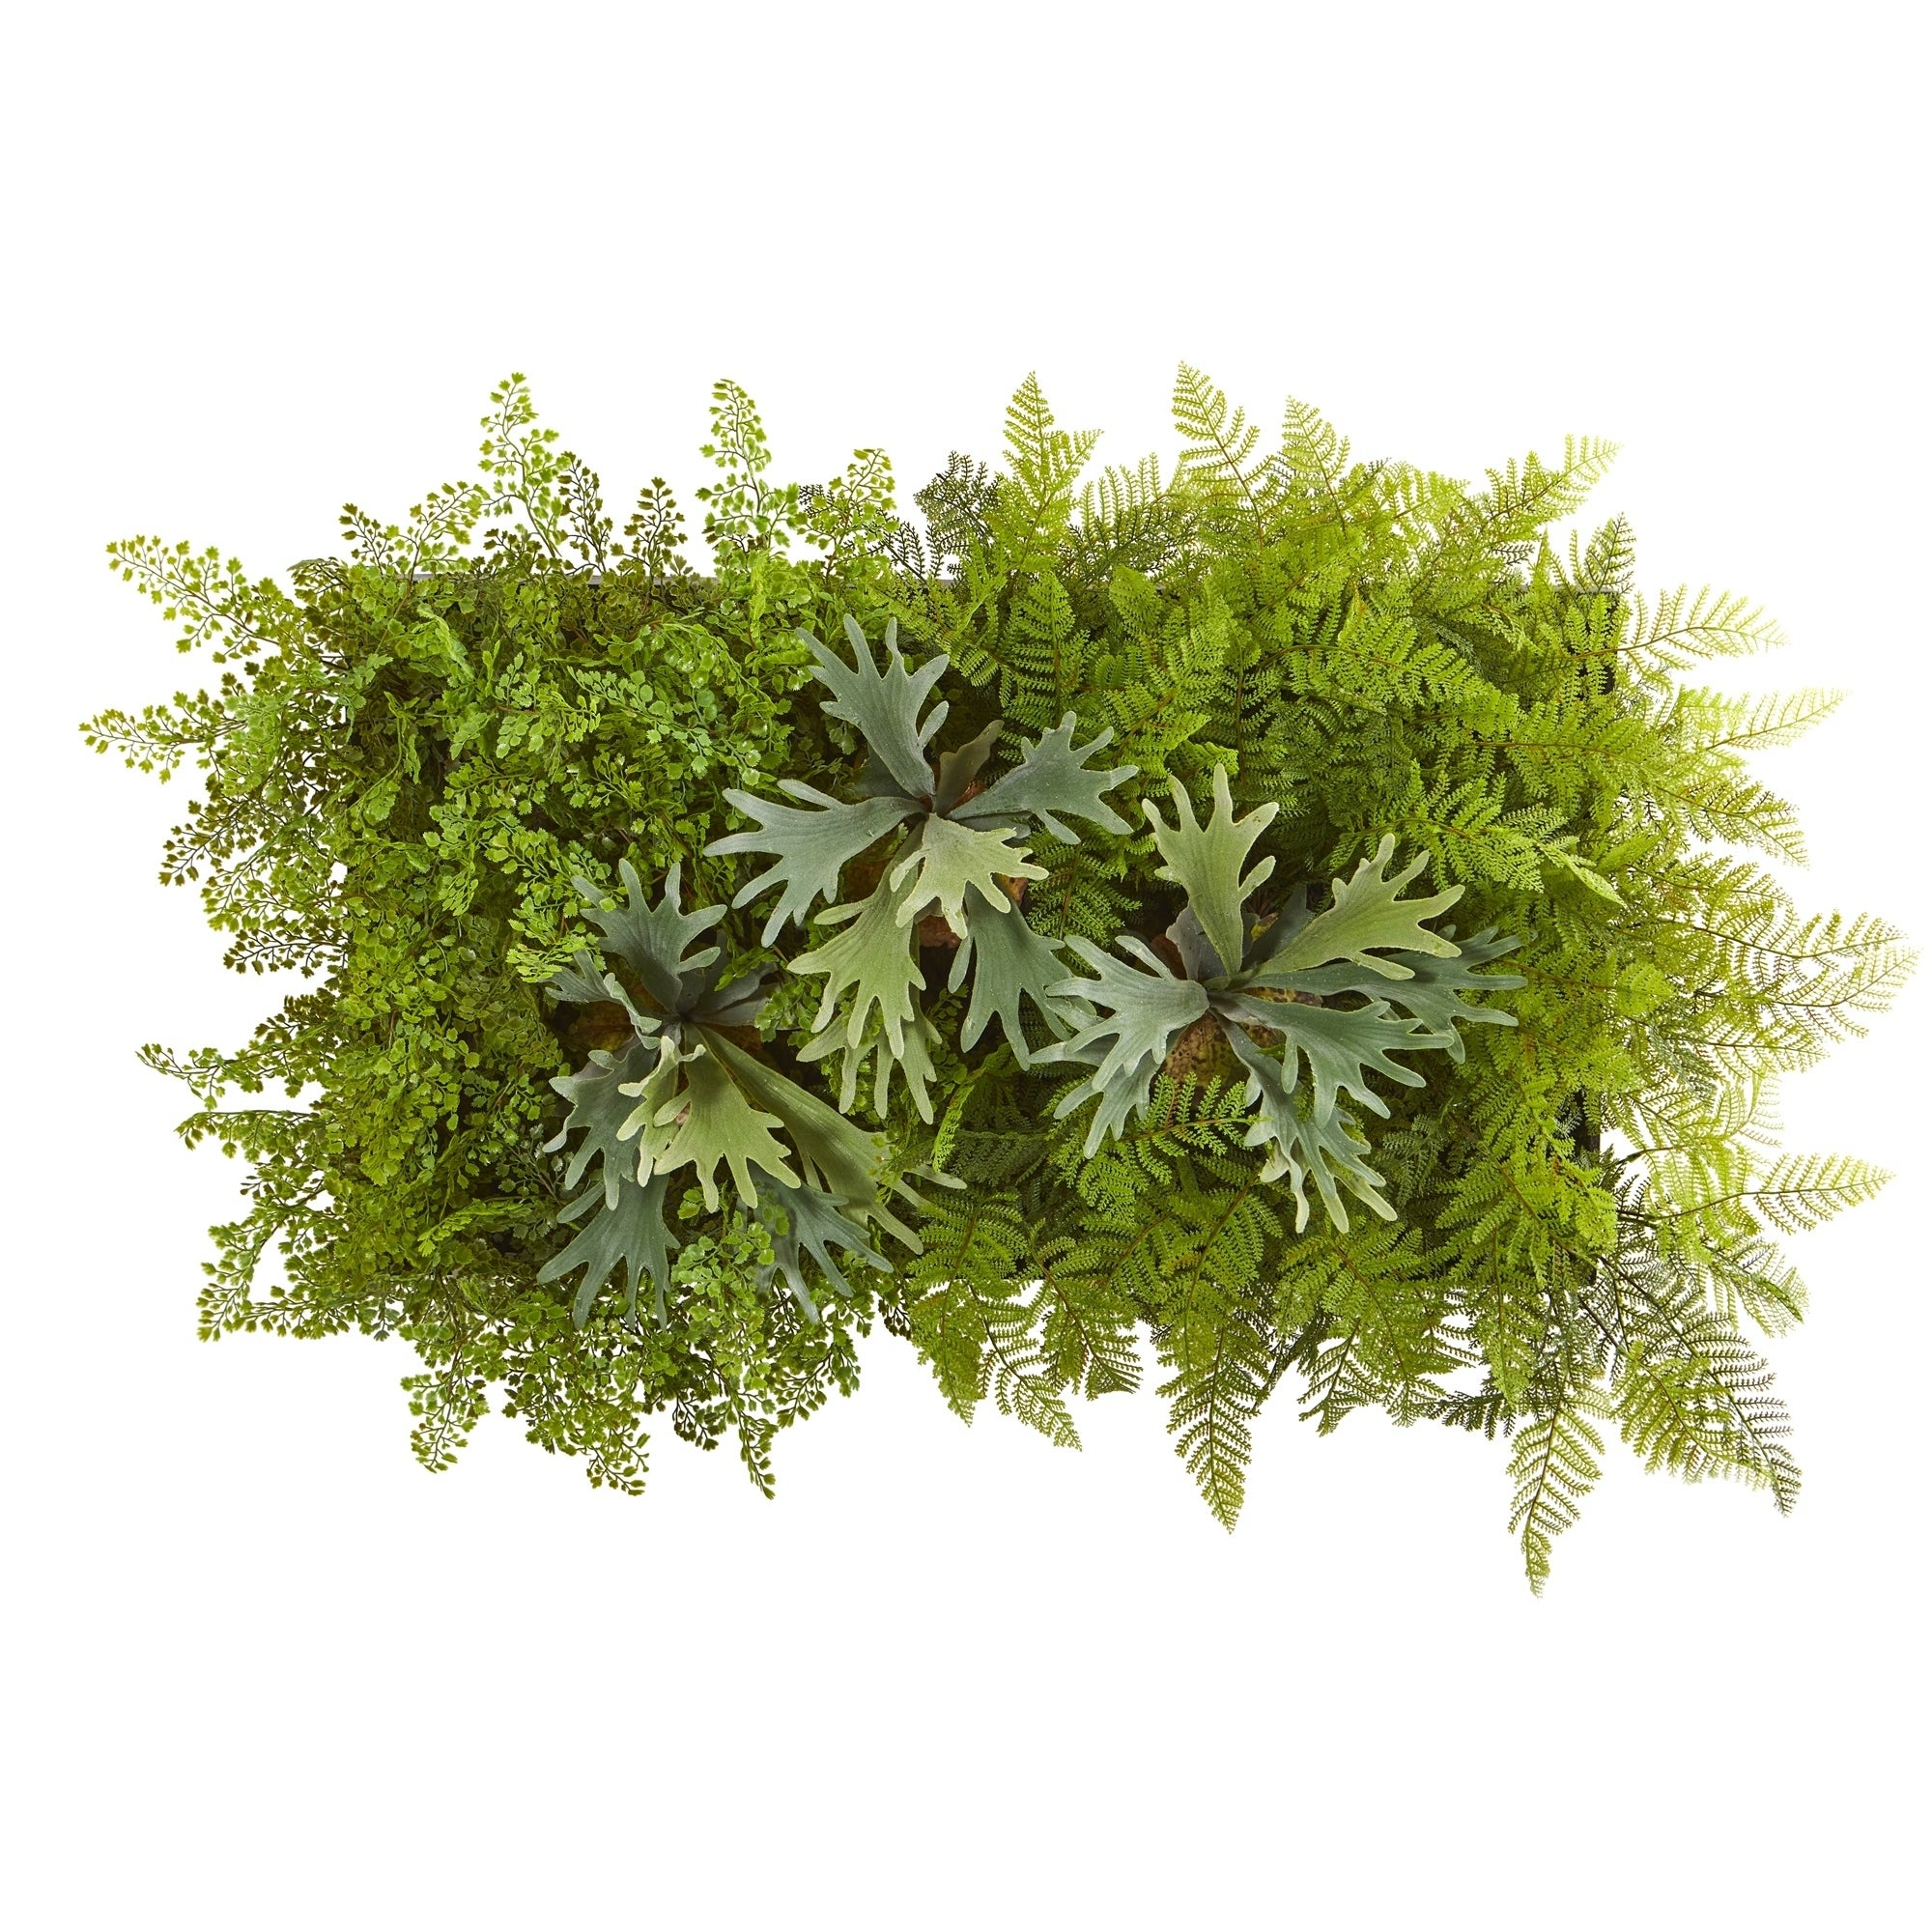 38 x 23 Staghorn and Fern Artificial Living Wall